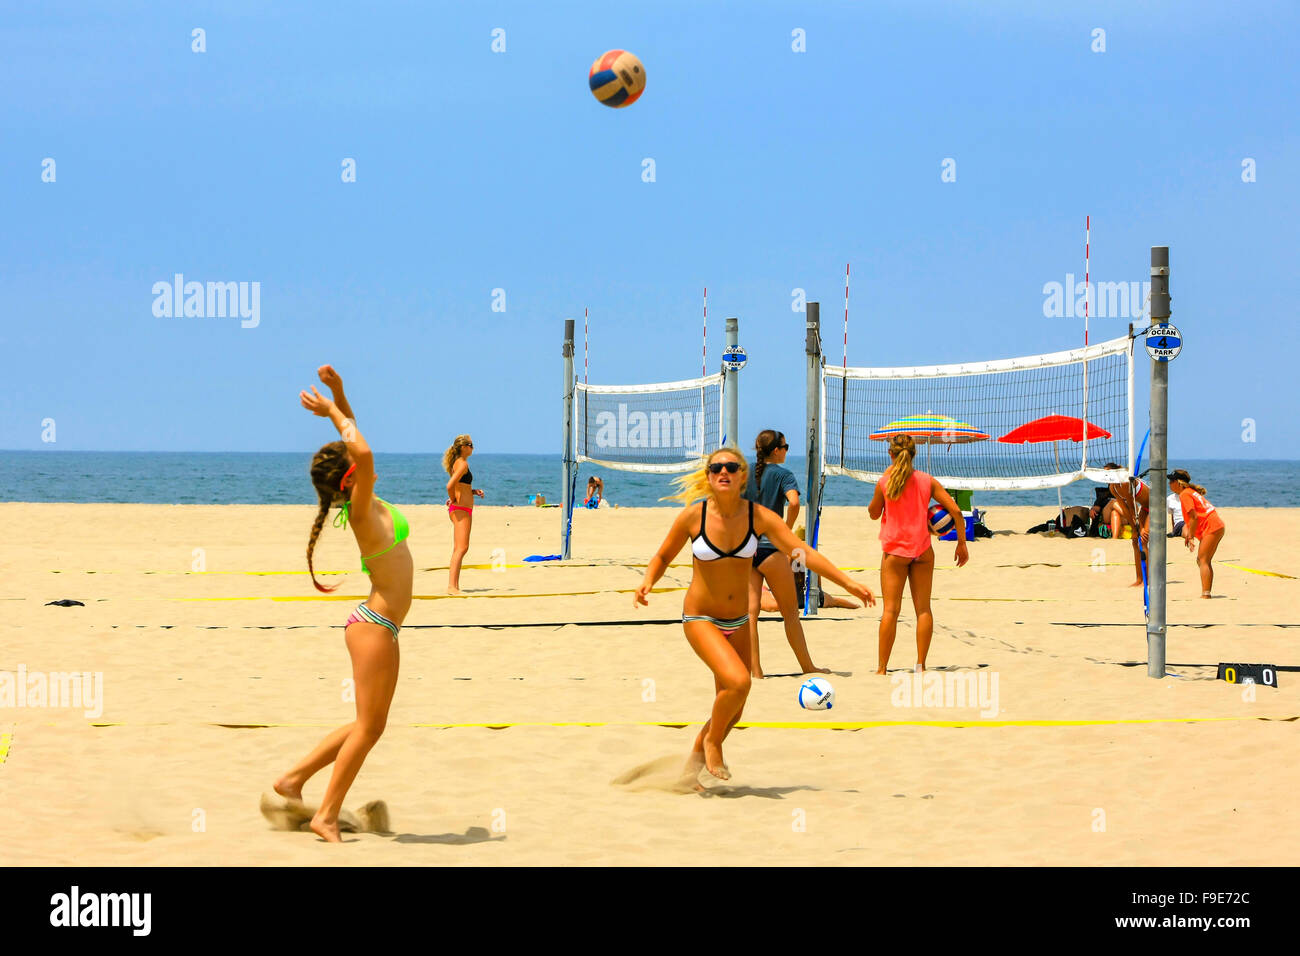 Young college girls playing beach volleyball on Santa Monica beach in California Stock Photo